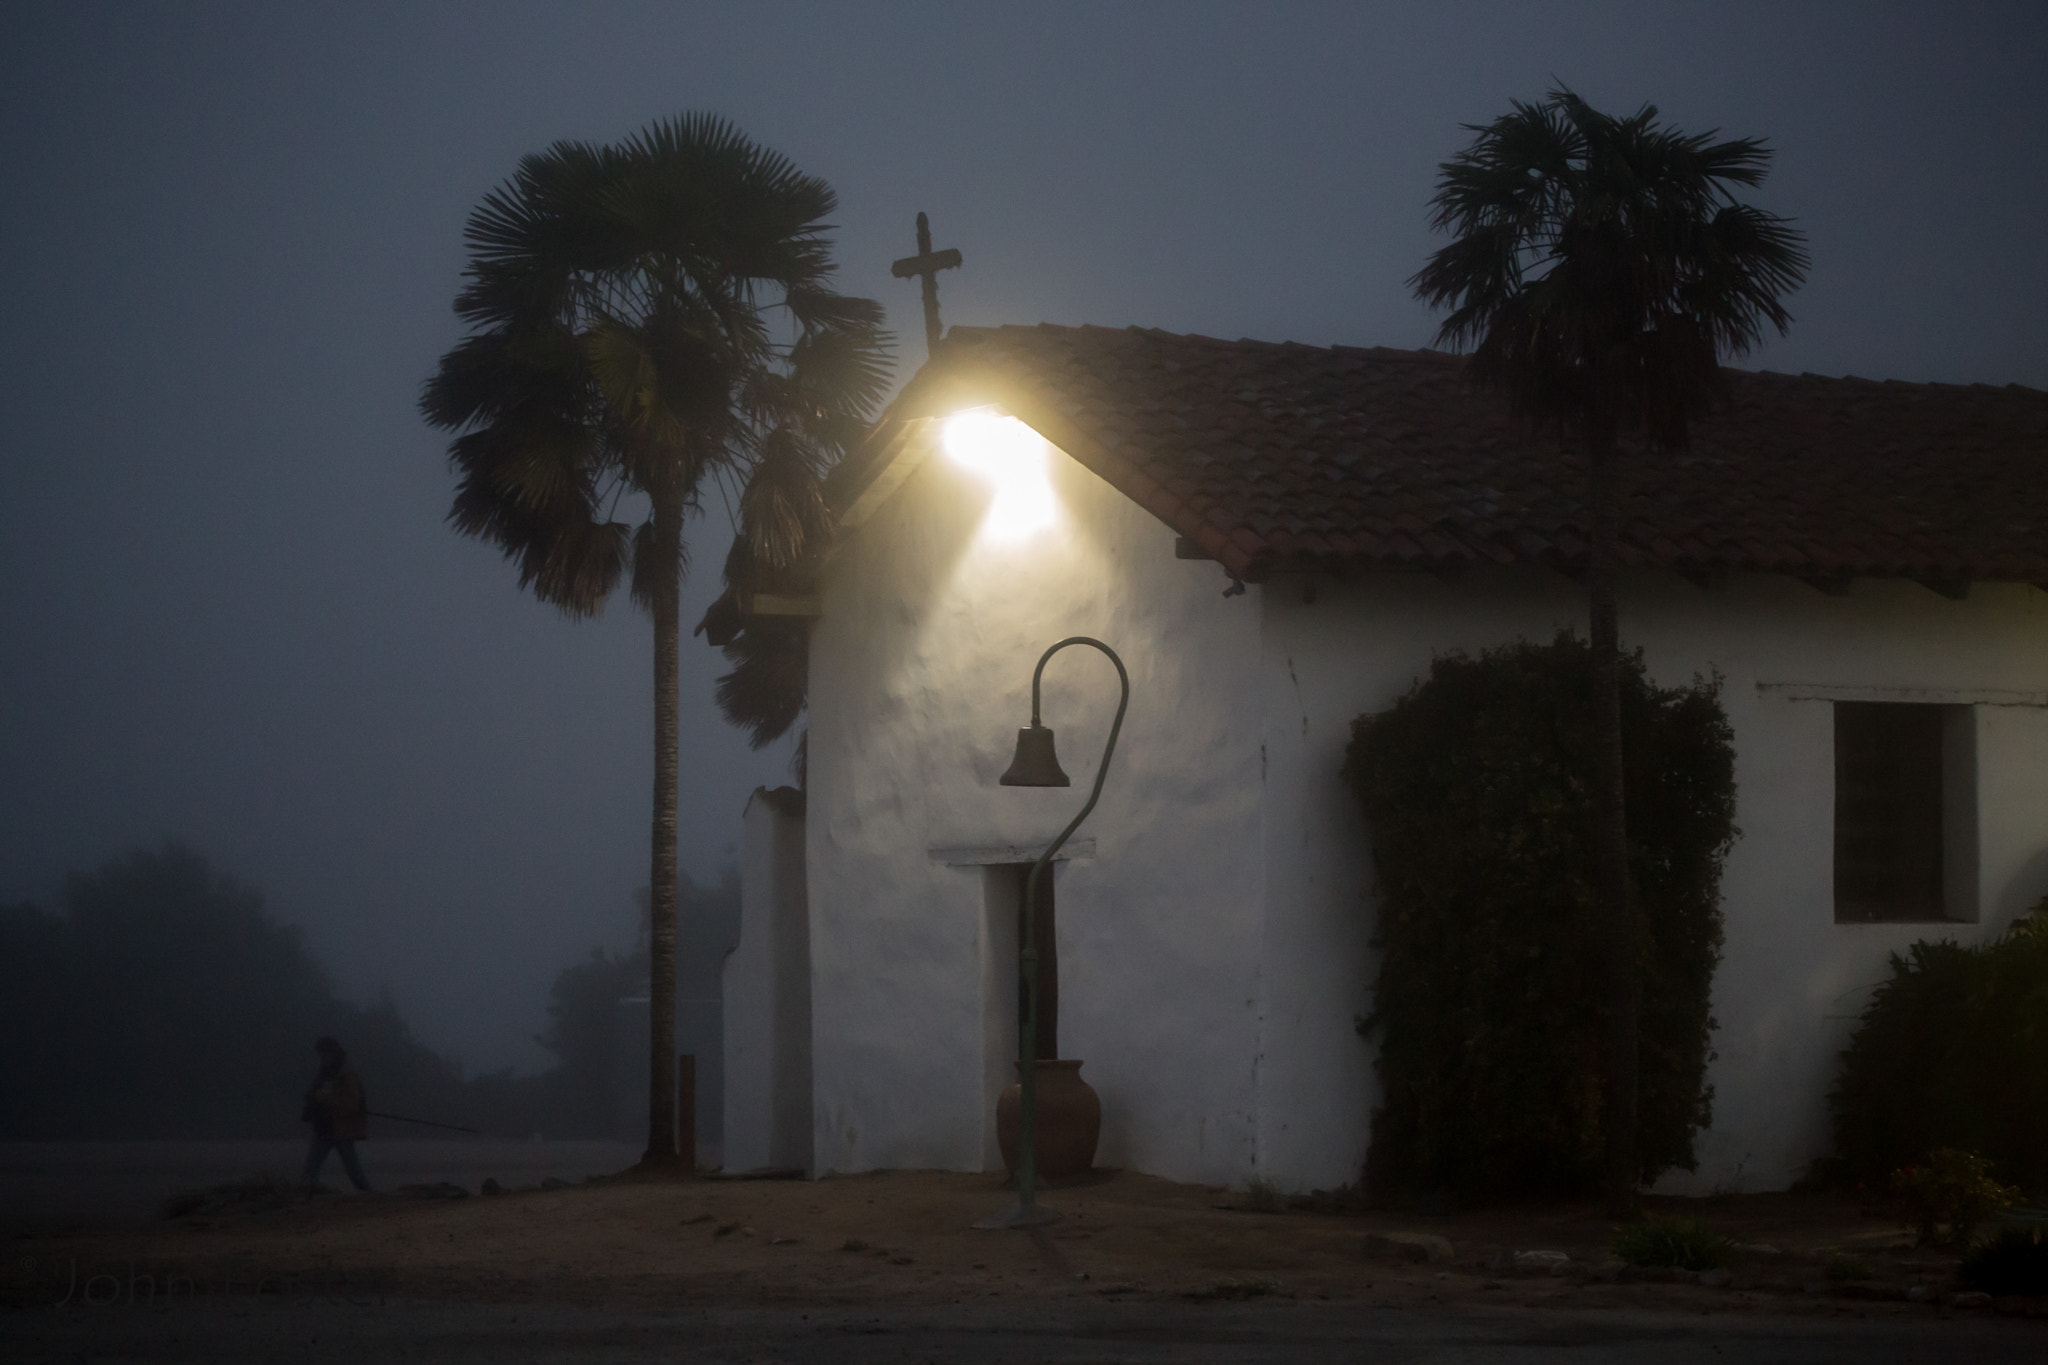 Photograph Morning fog at Mission Soledad in California by John Foster on 500px